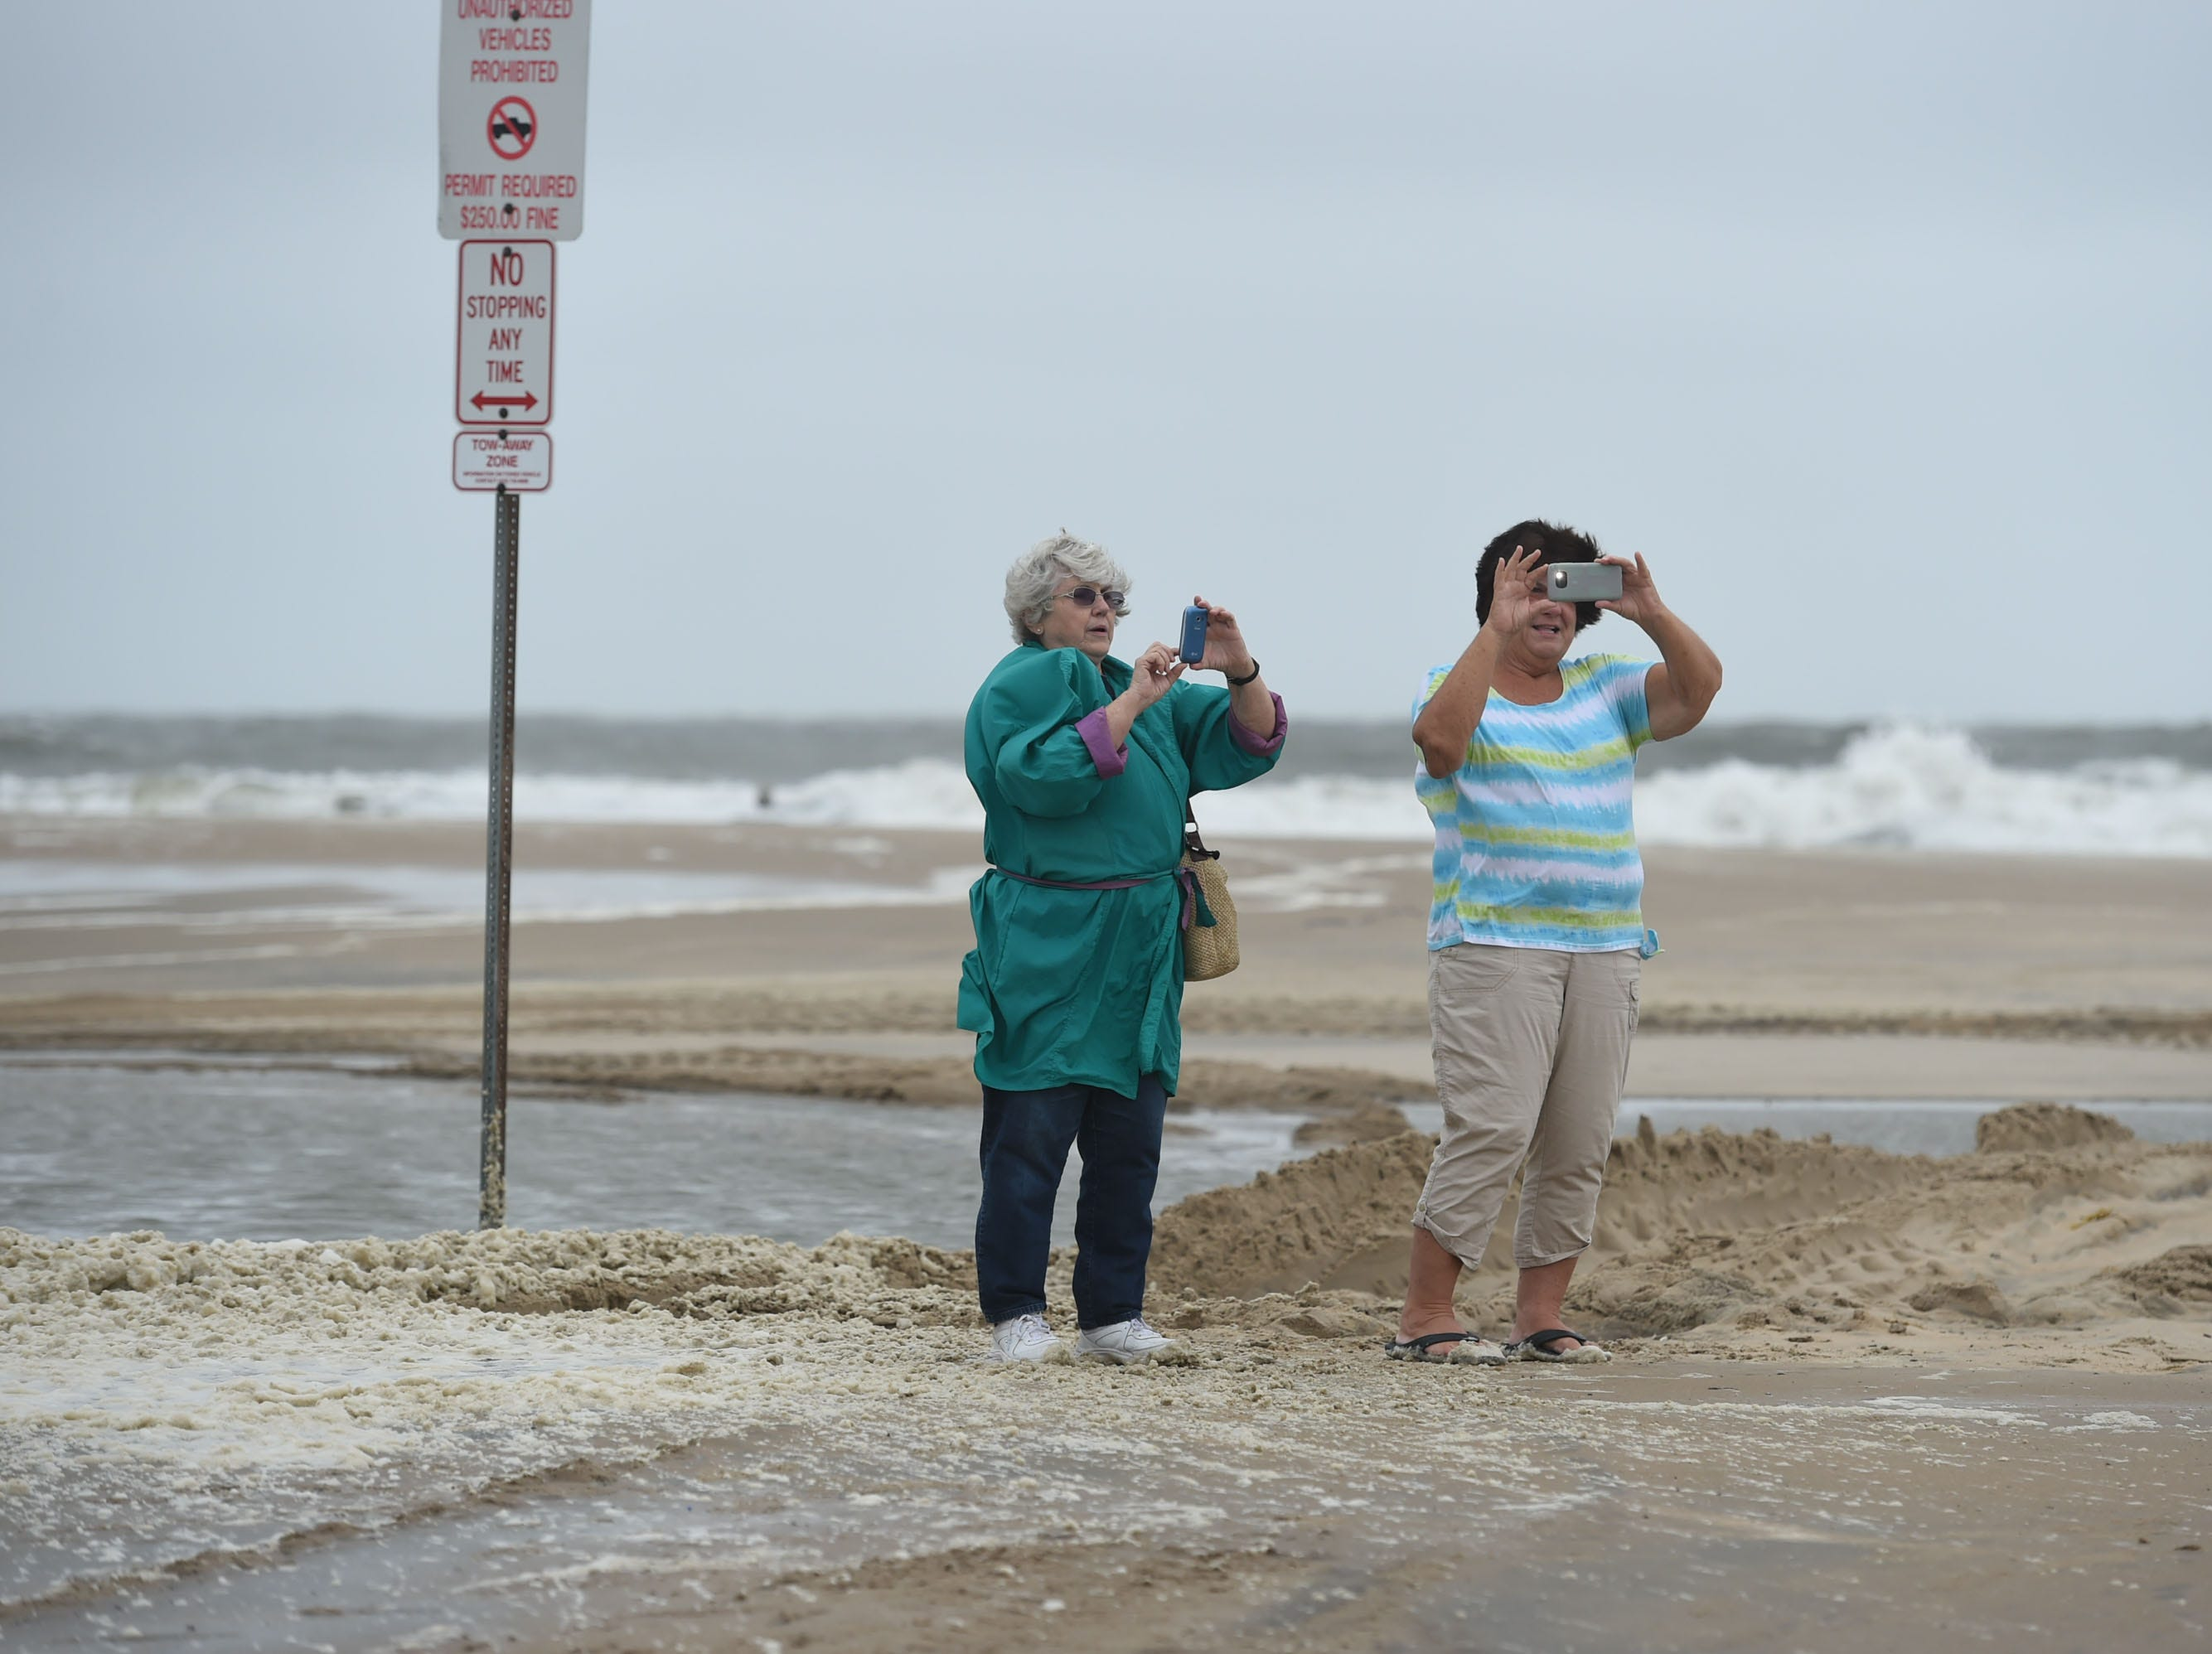 People flock to the inlet to take photos of high seas and large waves on Monday, Sept. 10, 2018.